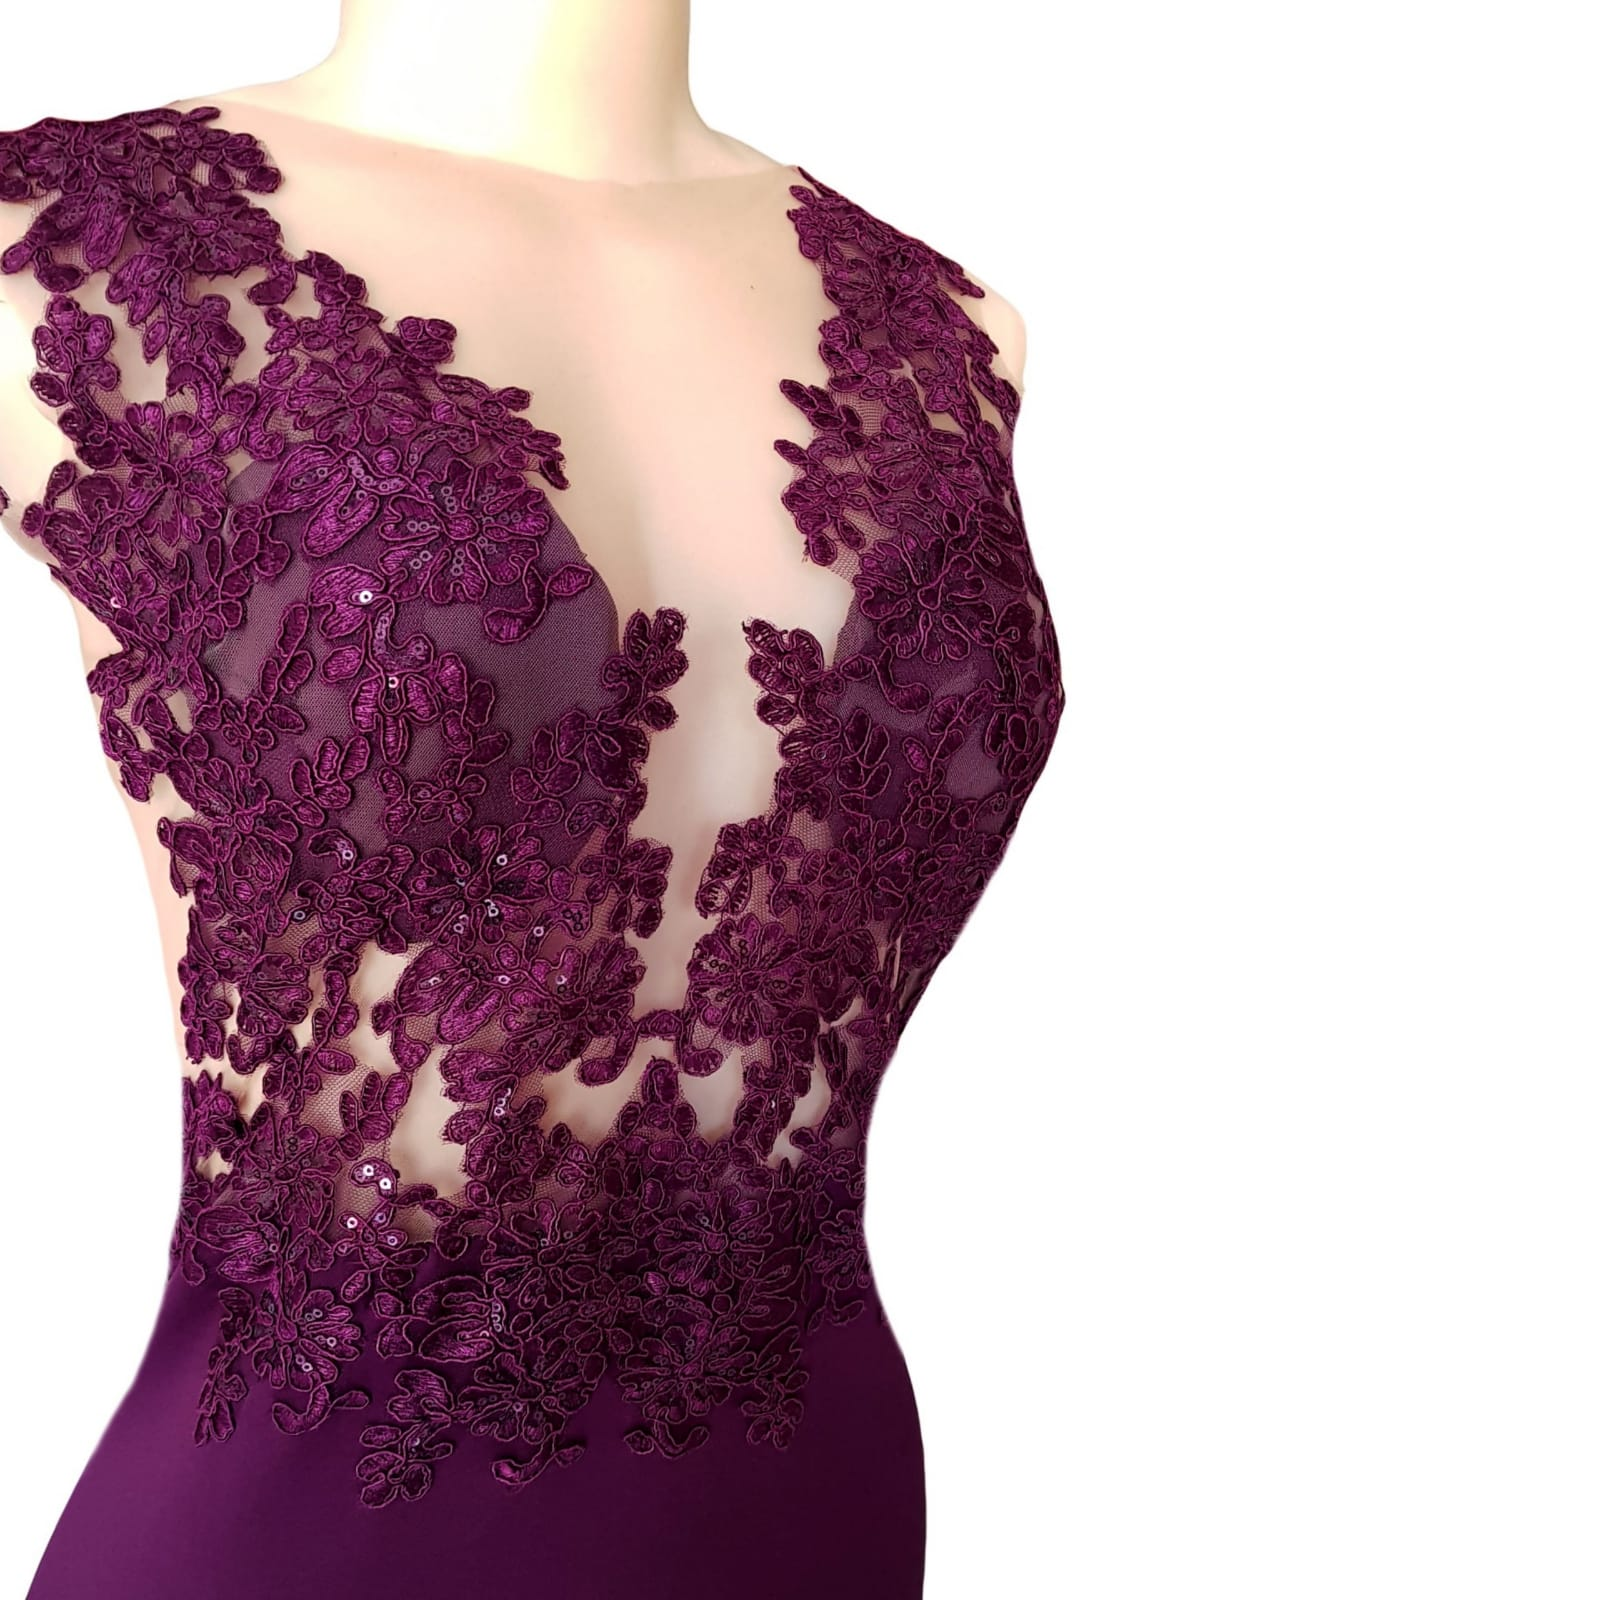 Plum soft mermaid gala dress illusion lace bodice 4 plum soft mermaid gala dress illusion lace bodice, open back detailed with lace. With a chiffon train with lace border.